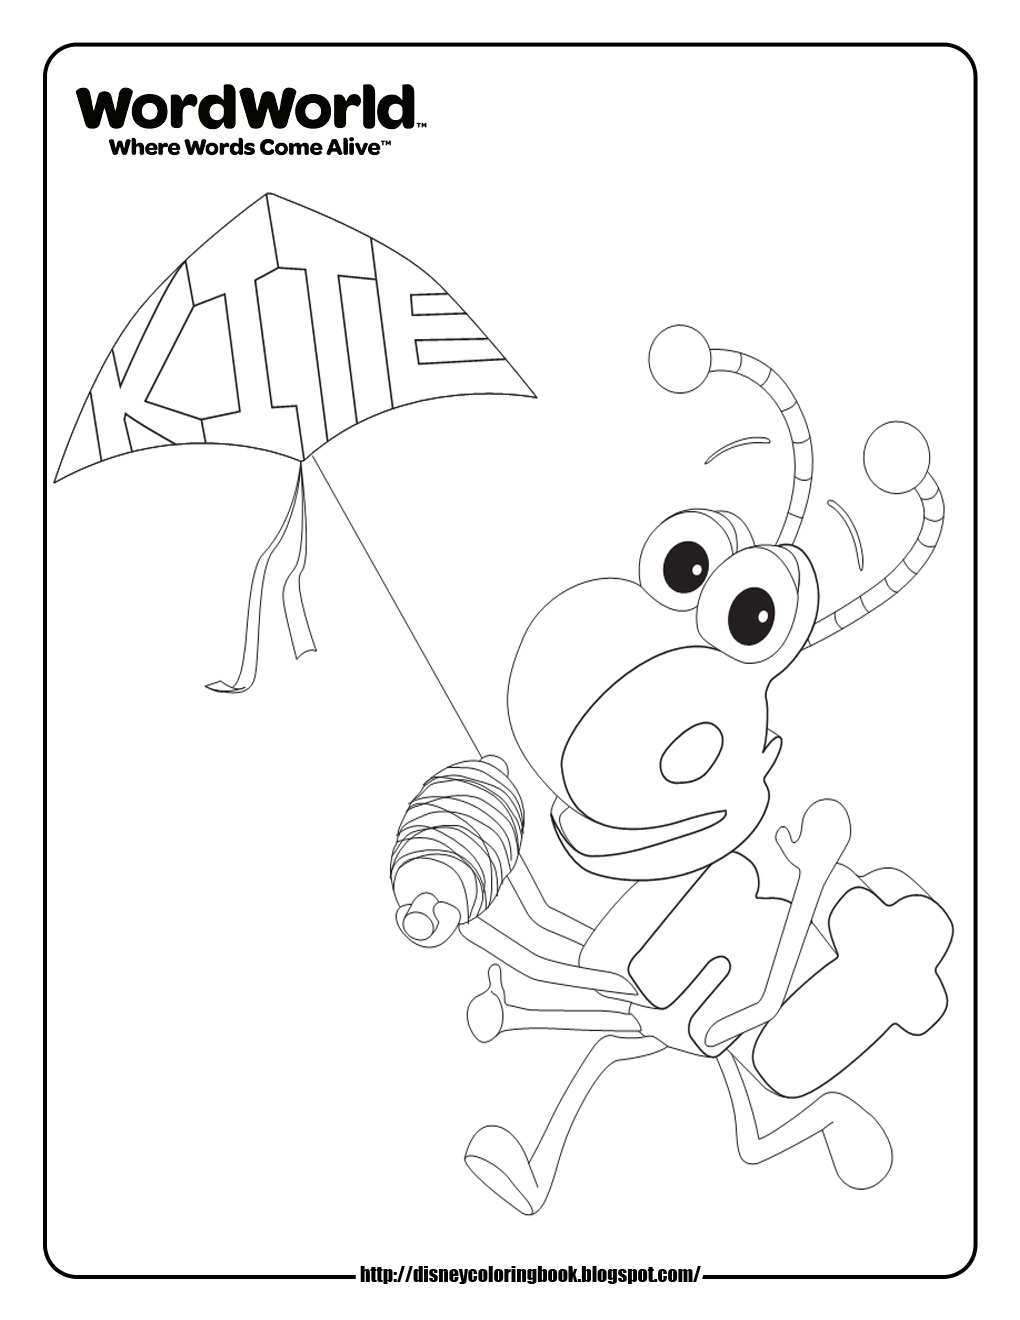 Wordworld 2 Free Disney Coloring Sheets Learn To Coloring Word World Coloring Pages